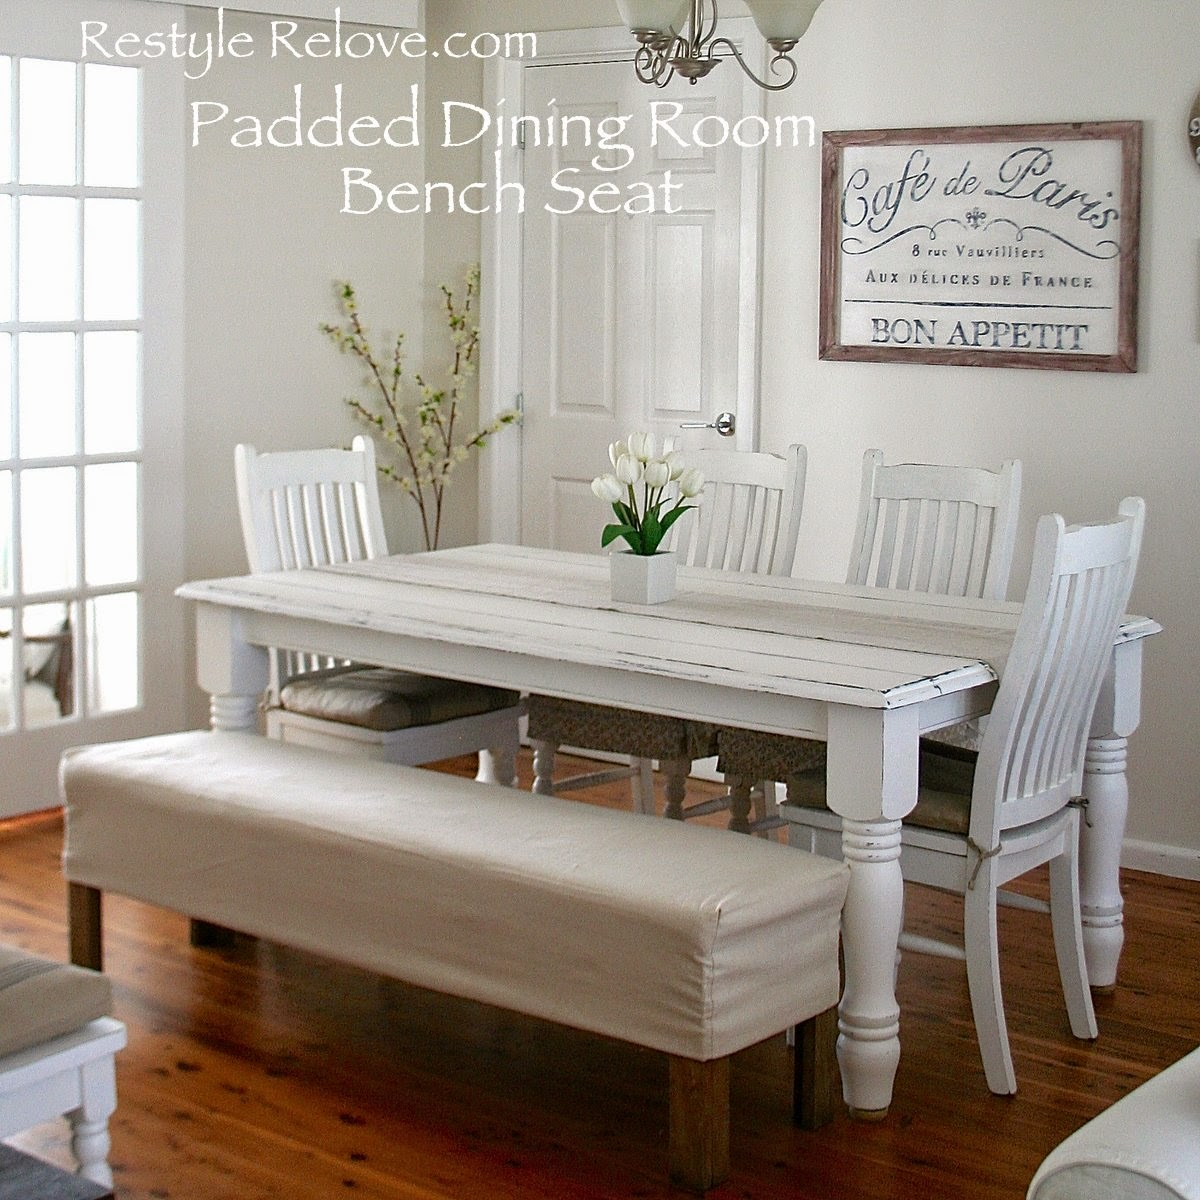 Dinner Table Bench: Padded Dining Room Bench Seat With Removable Washable Drop